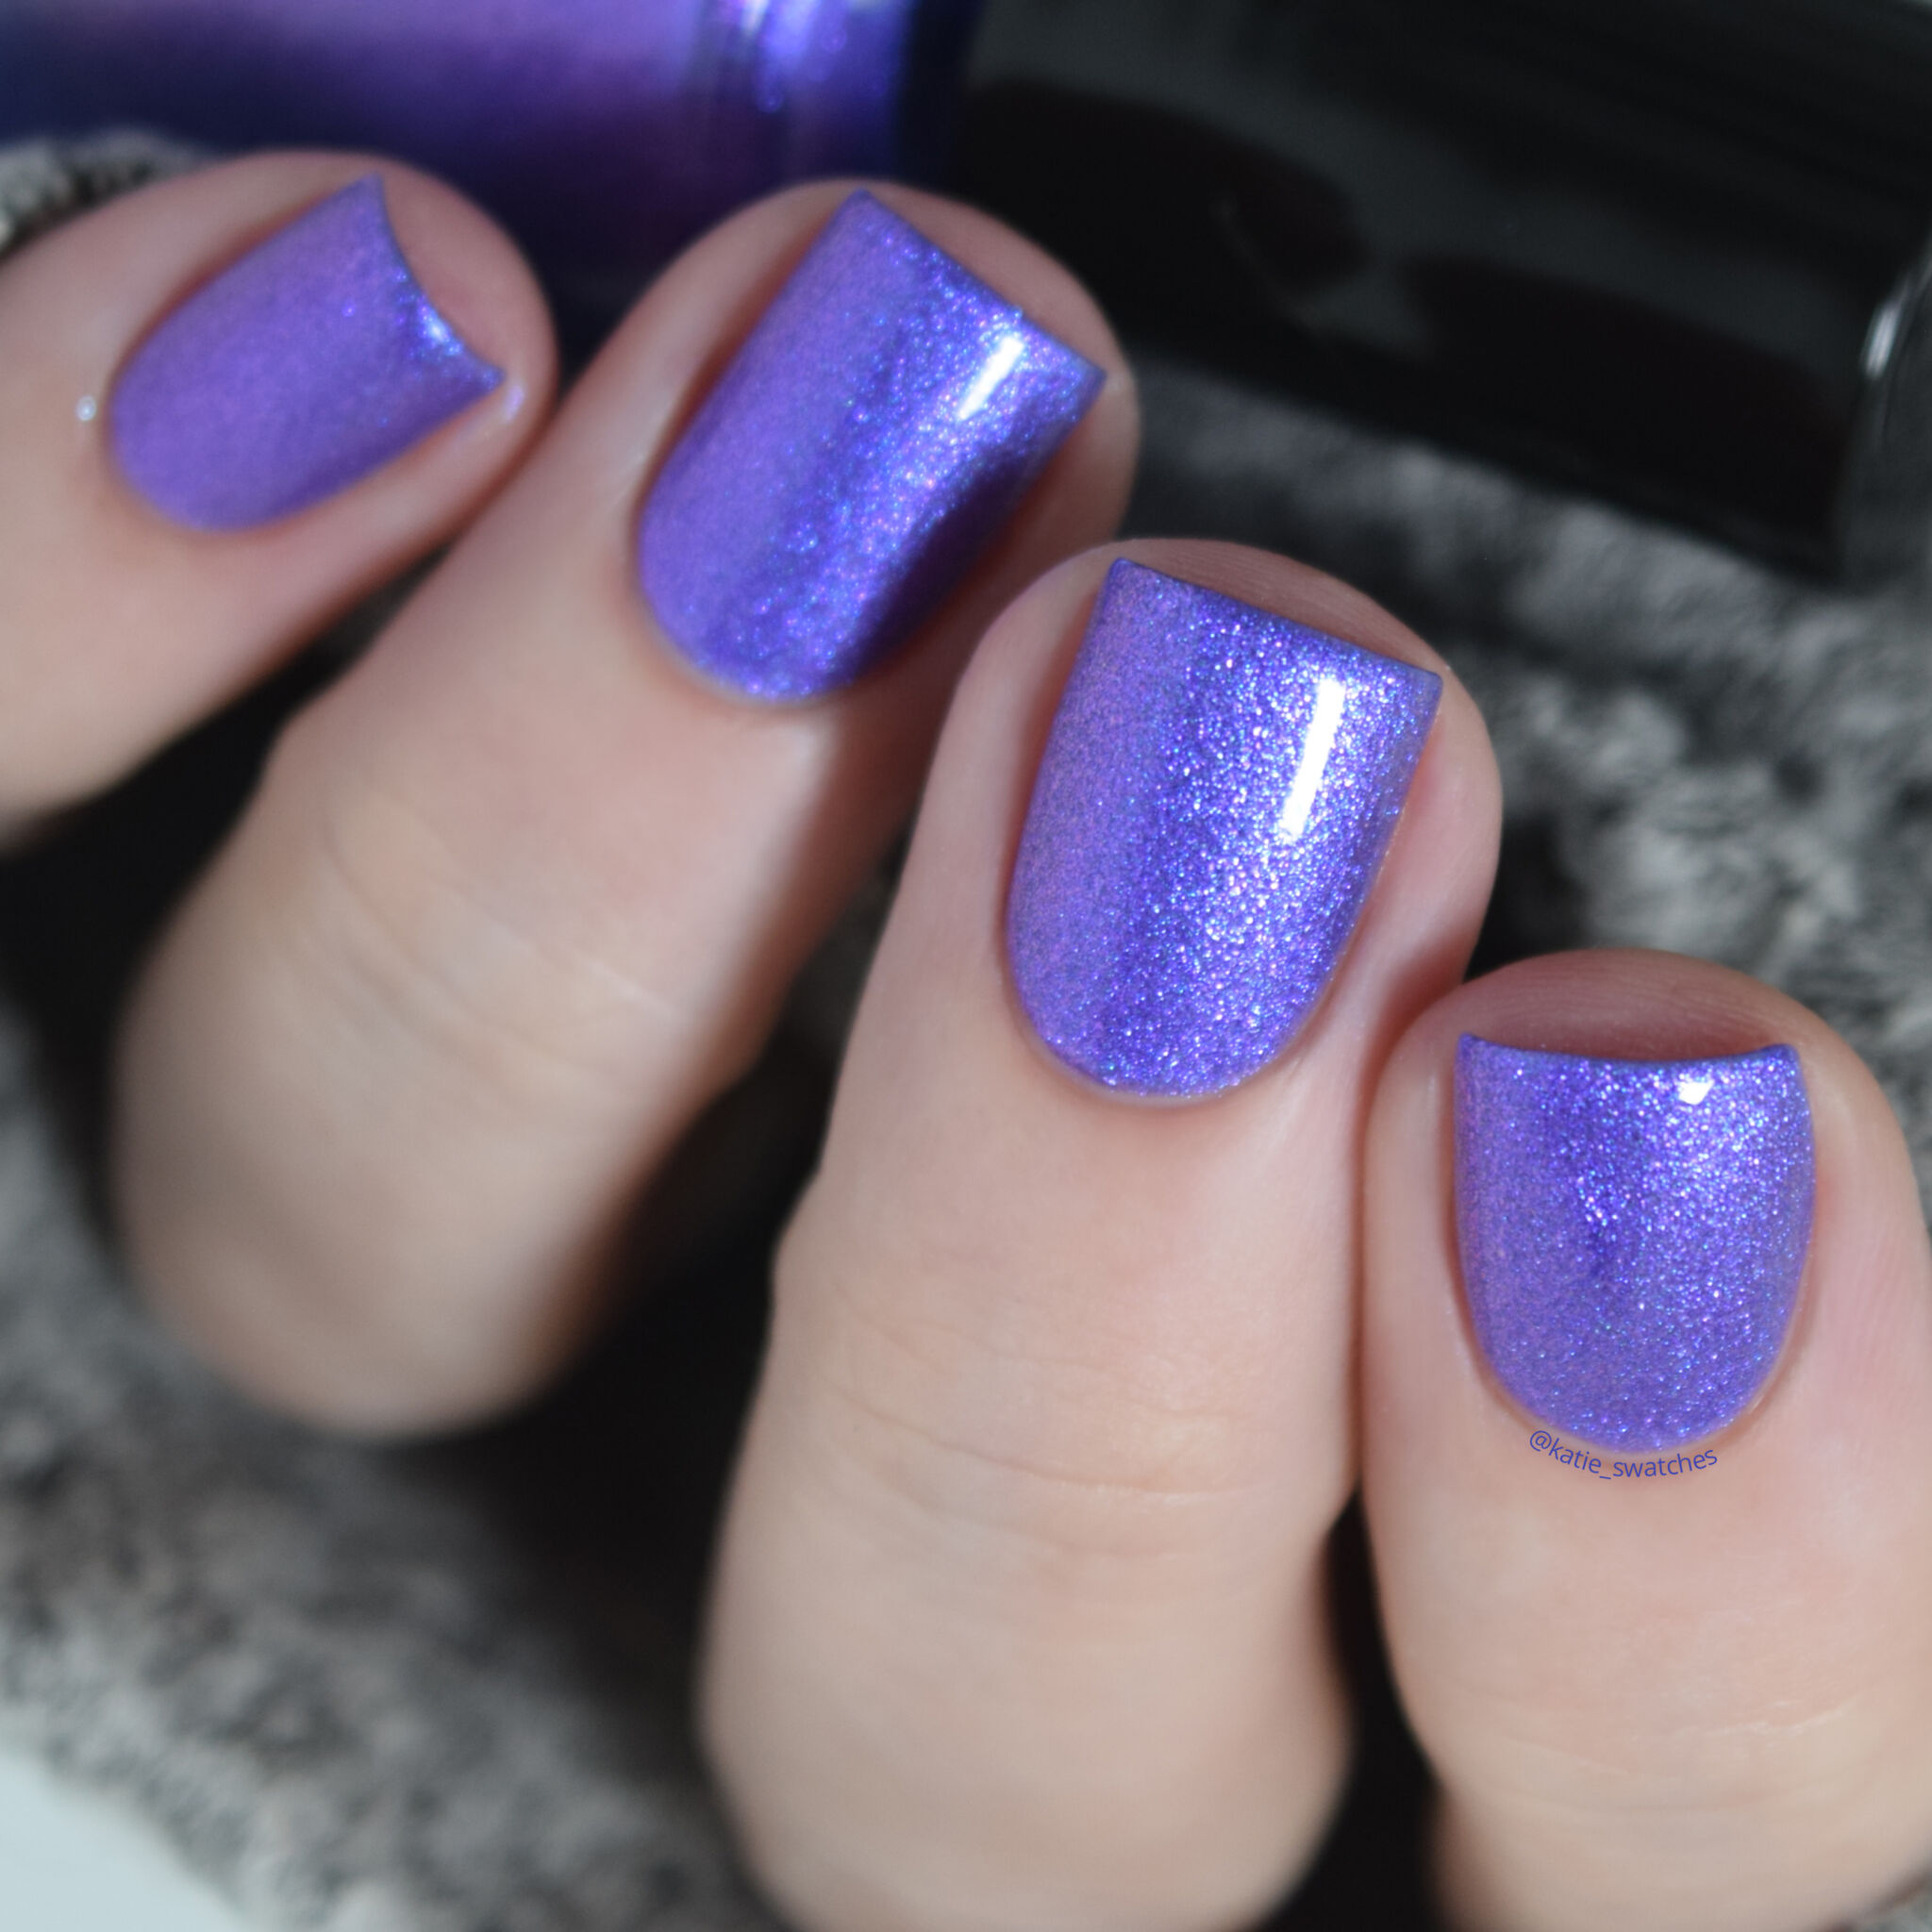 Girly Bits - Kiss This Guy matte nail polish swatch with top coat. Medium purple nail polish with a pink shimmer.